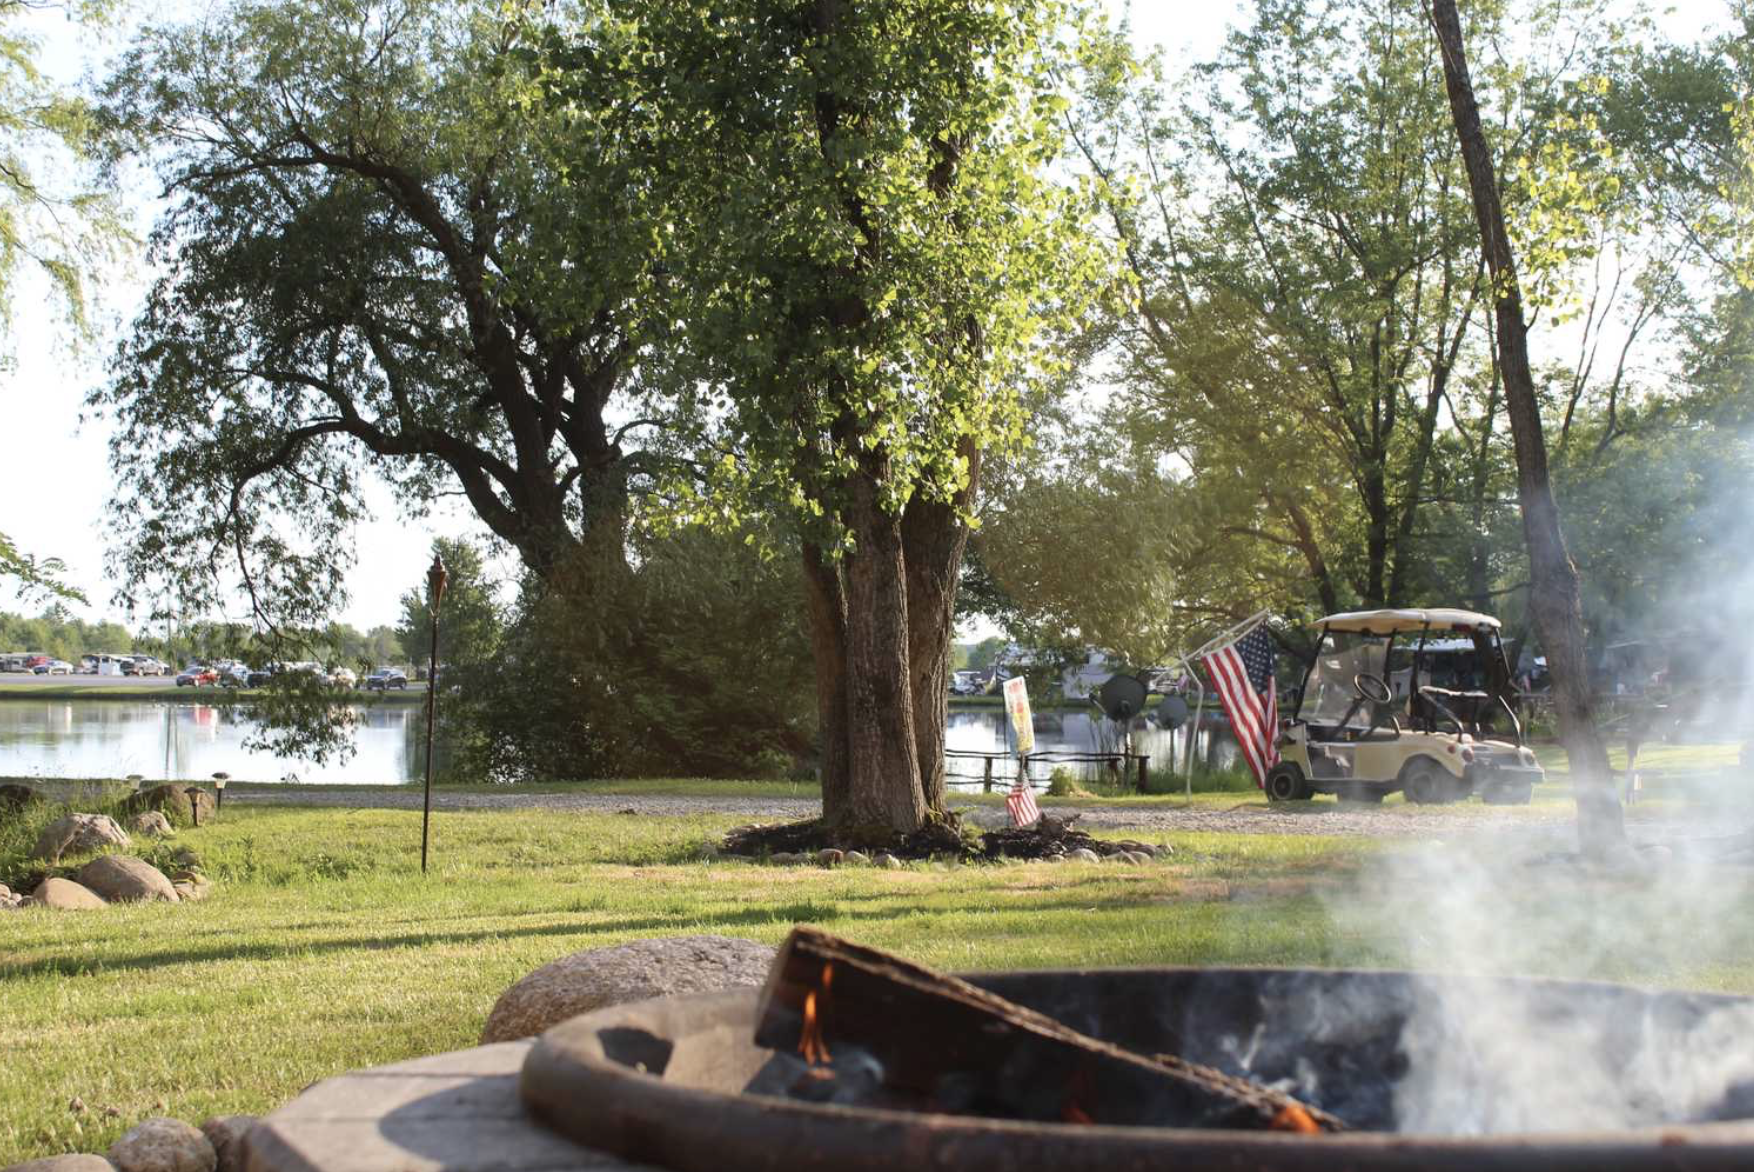 Photo of campground in front of campfire with golf cart in the background.